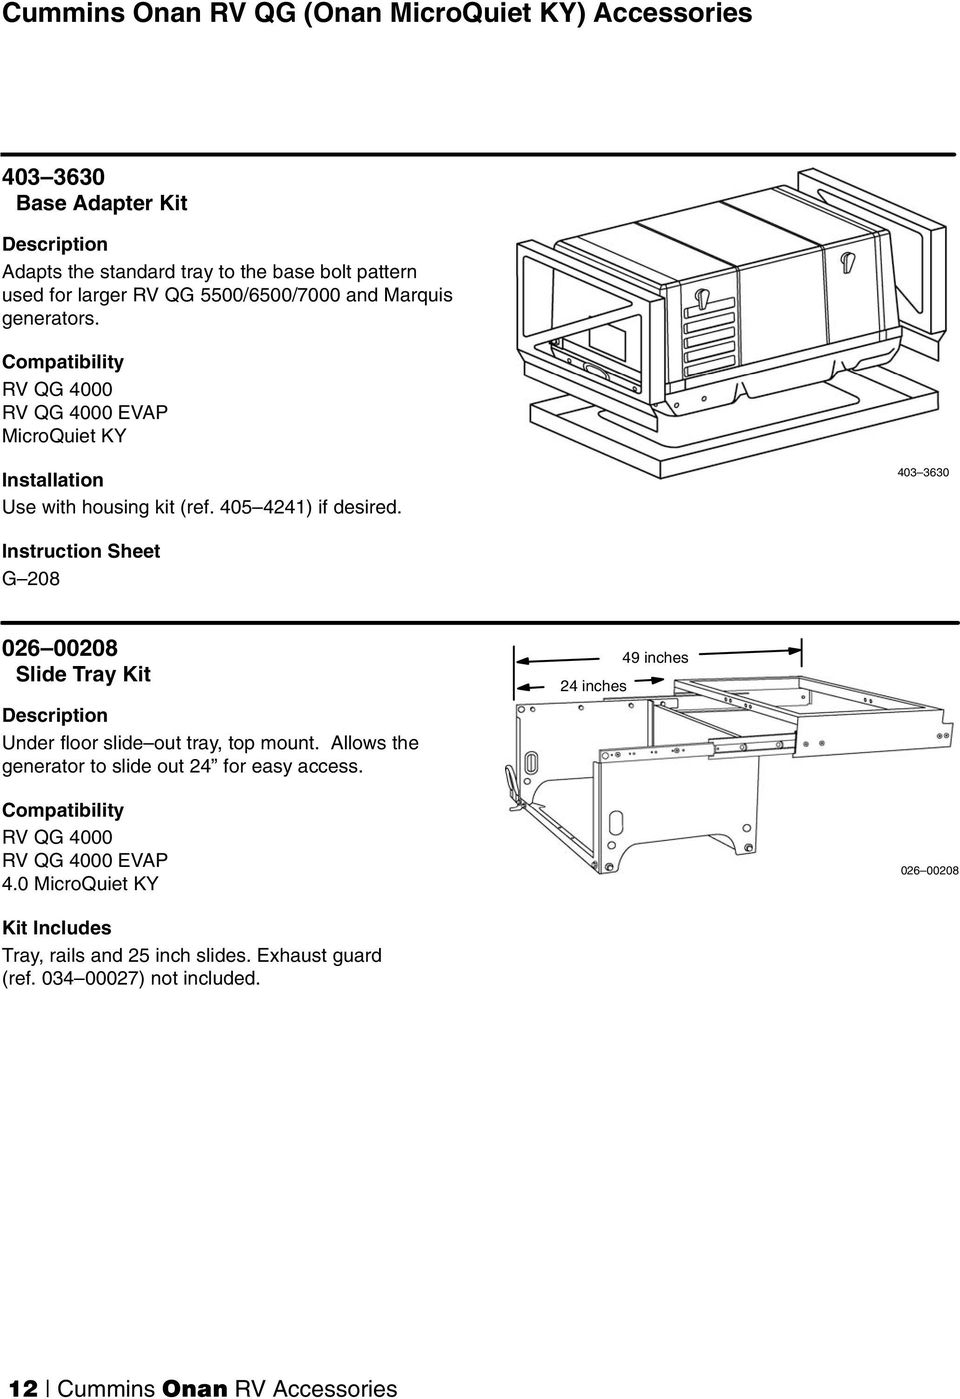 hight resolution of 403 3630 instruction sheet g 208 026 00208 slide tray kit under floor slide out tray